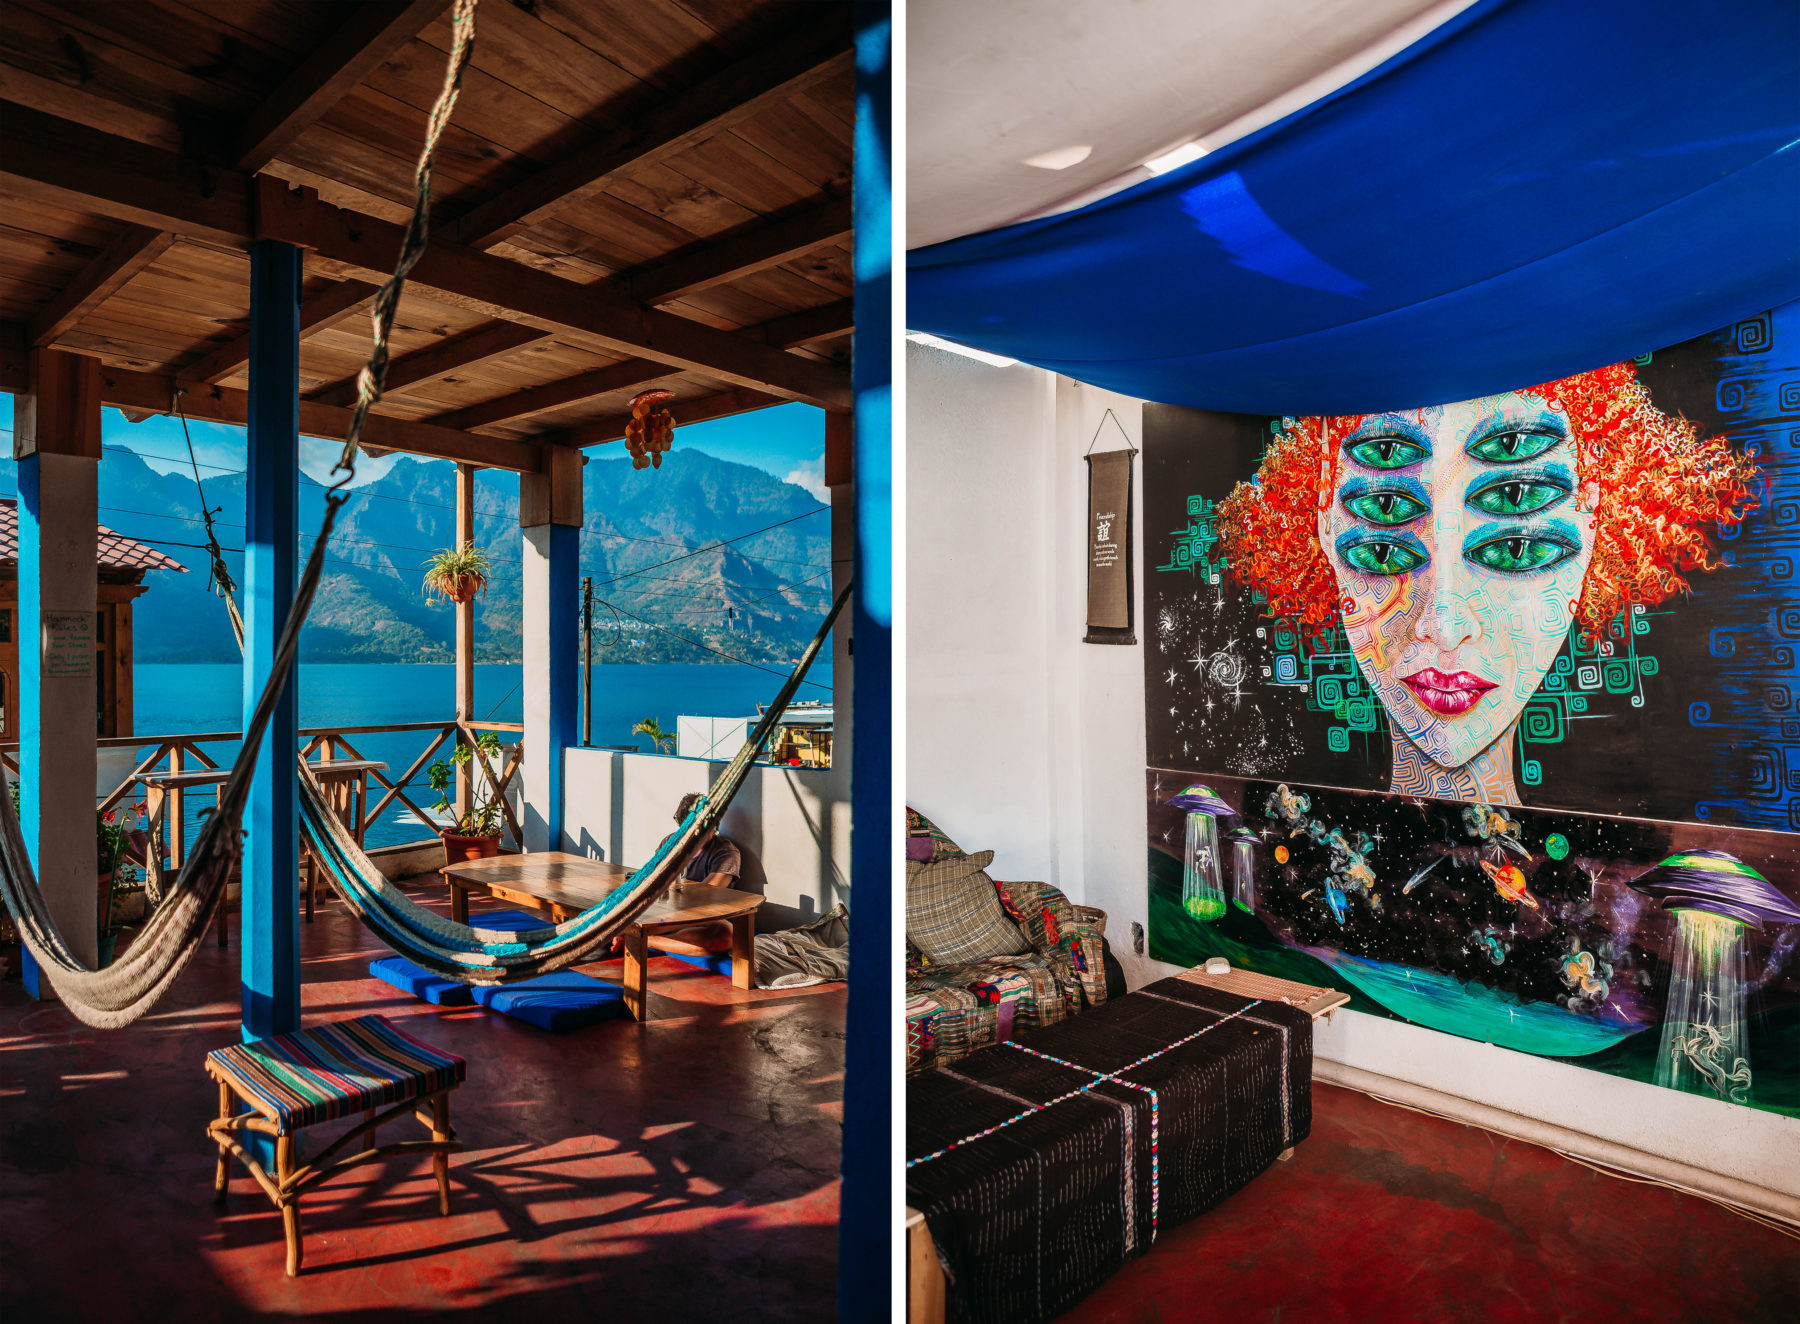 guatemala lake atitlan lago central america most beautiful lake in the world blue water sunny day street dogs puppie deck san juan la laguna volunteer worldpackers mayachik eco hostel sustainable local people lush green san marcos coffee vegan food garden delicious healthy smoothie vegan pizza vegan burrito interior